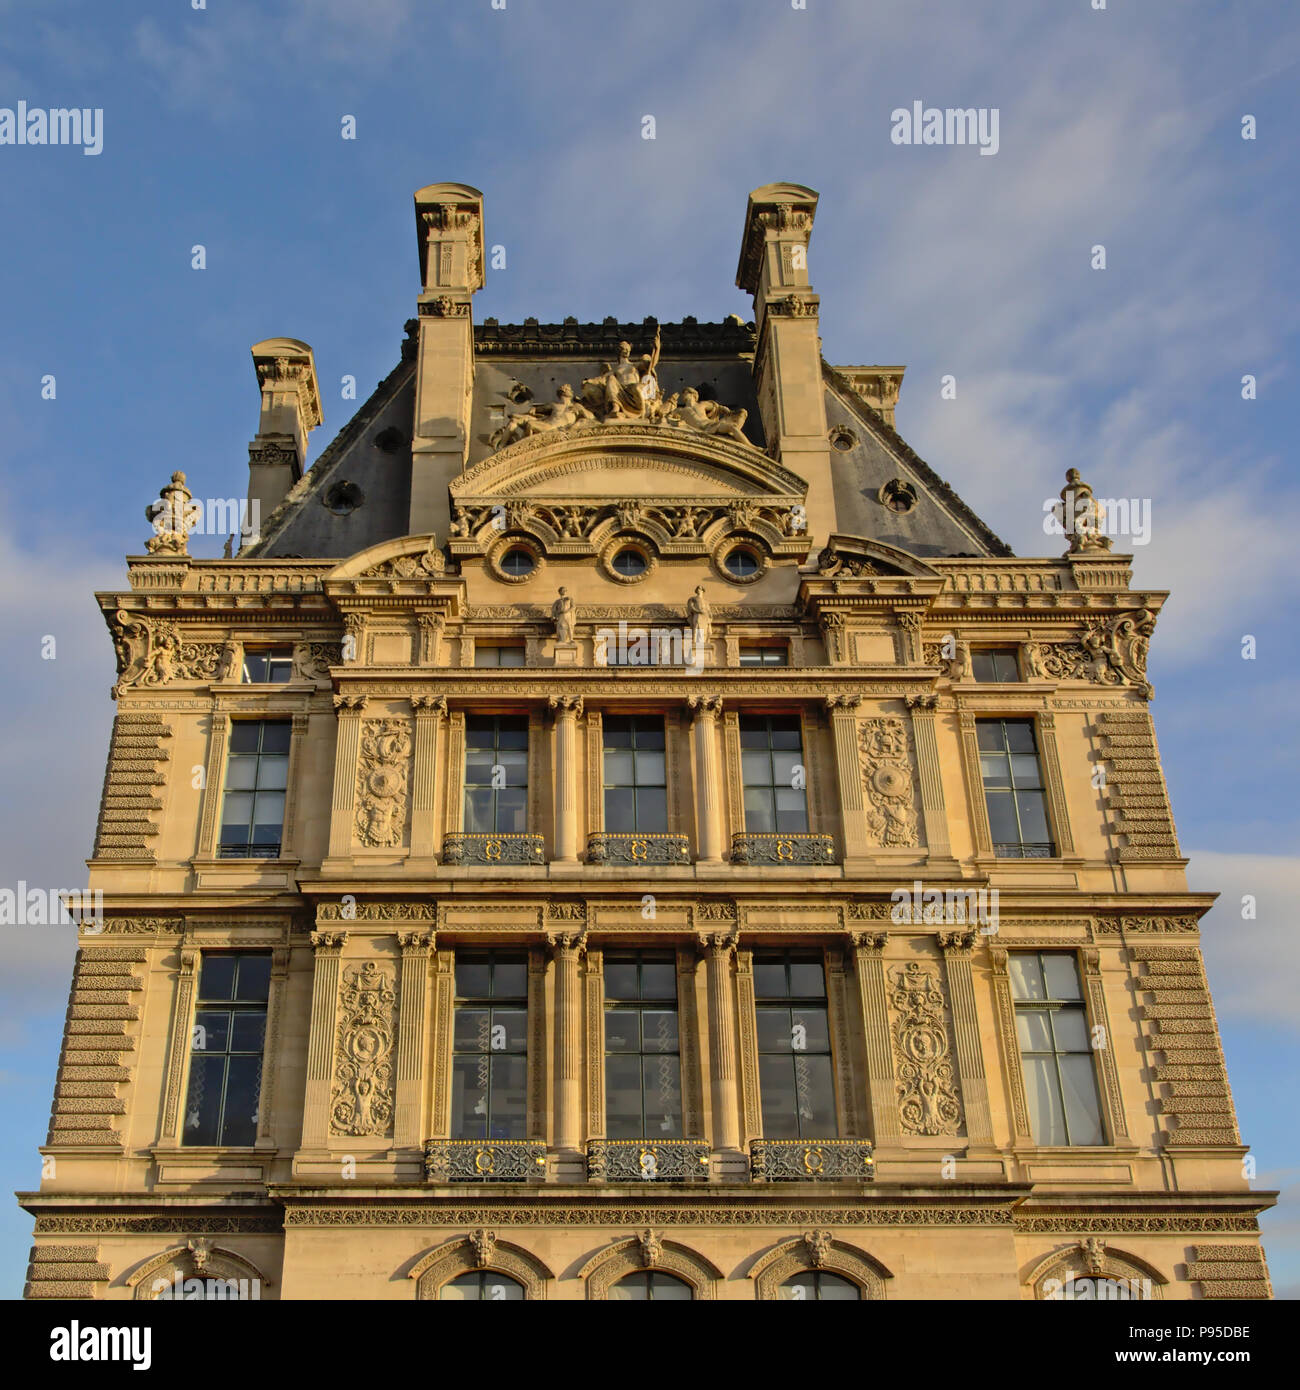 Ornate Second Empire architecture detail of the building of Ecole de Louvre, Paris, France - Stock Image